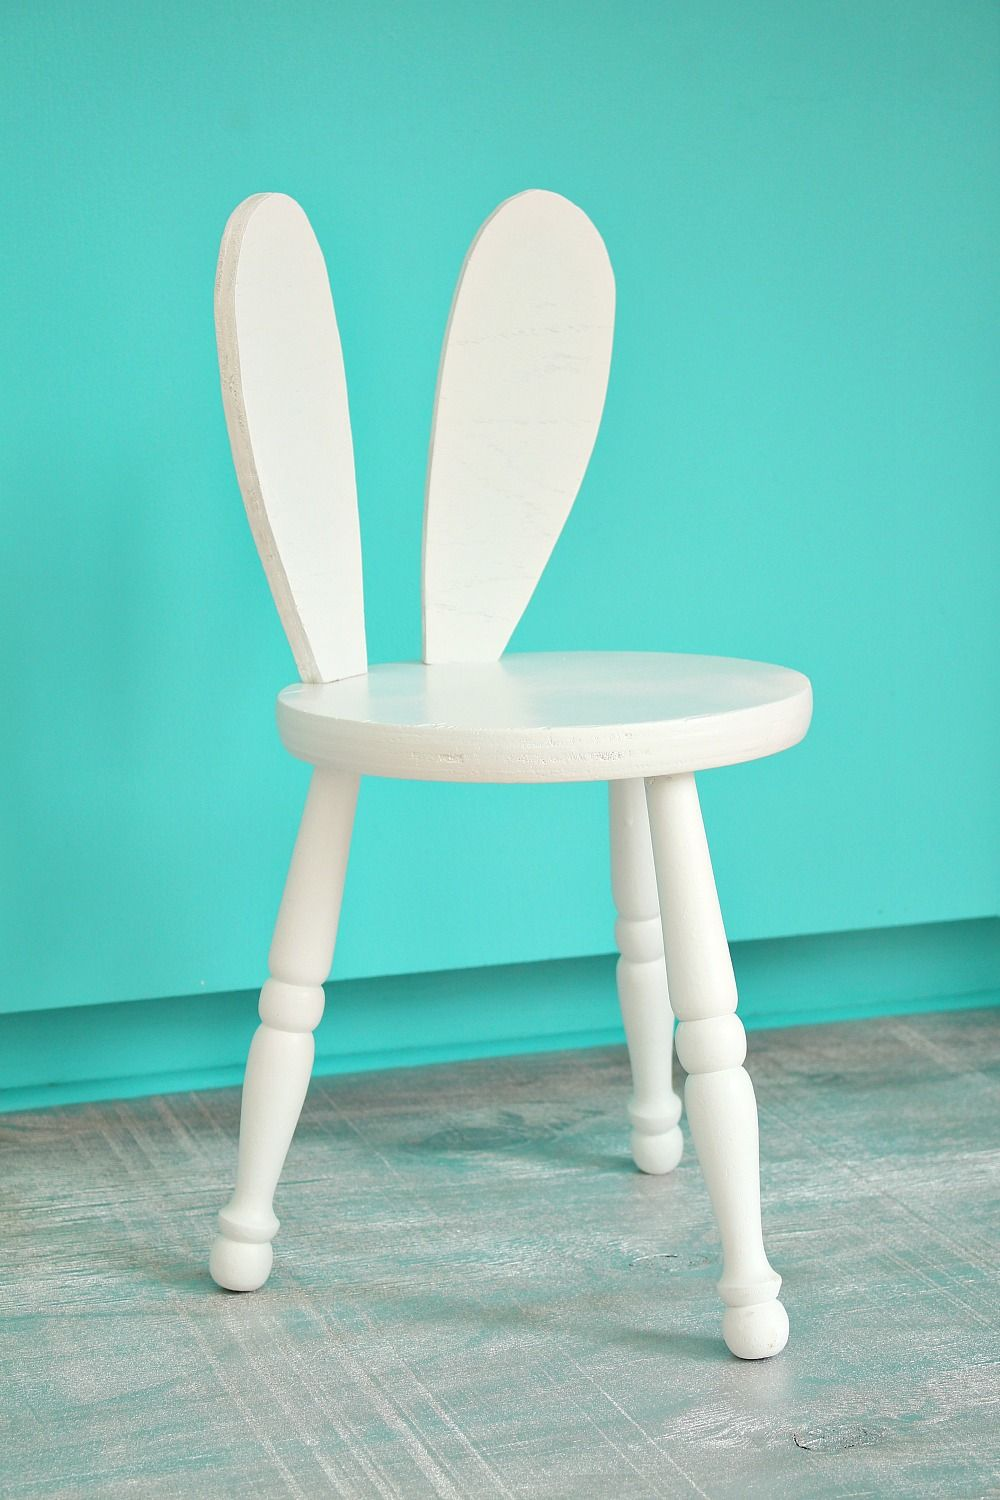 DIY Stool with Bunny Ears // Easy furniture hack - so cute for kid's rooms and fun for spring. Great upcycling projects.